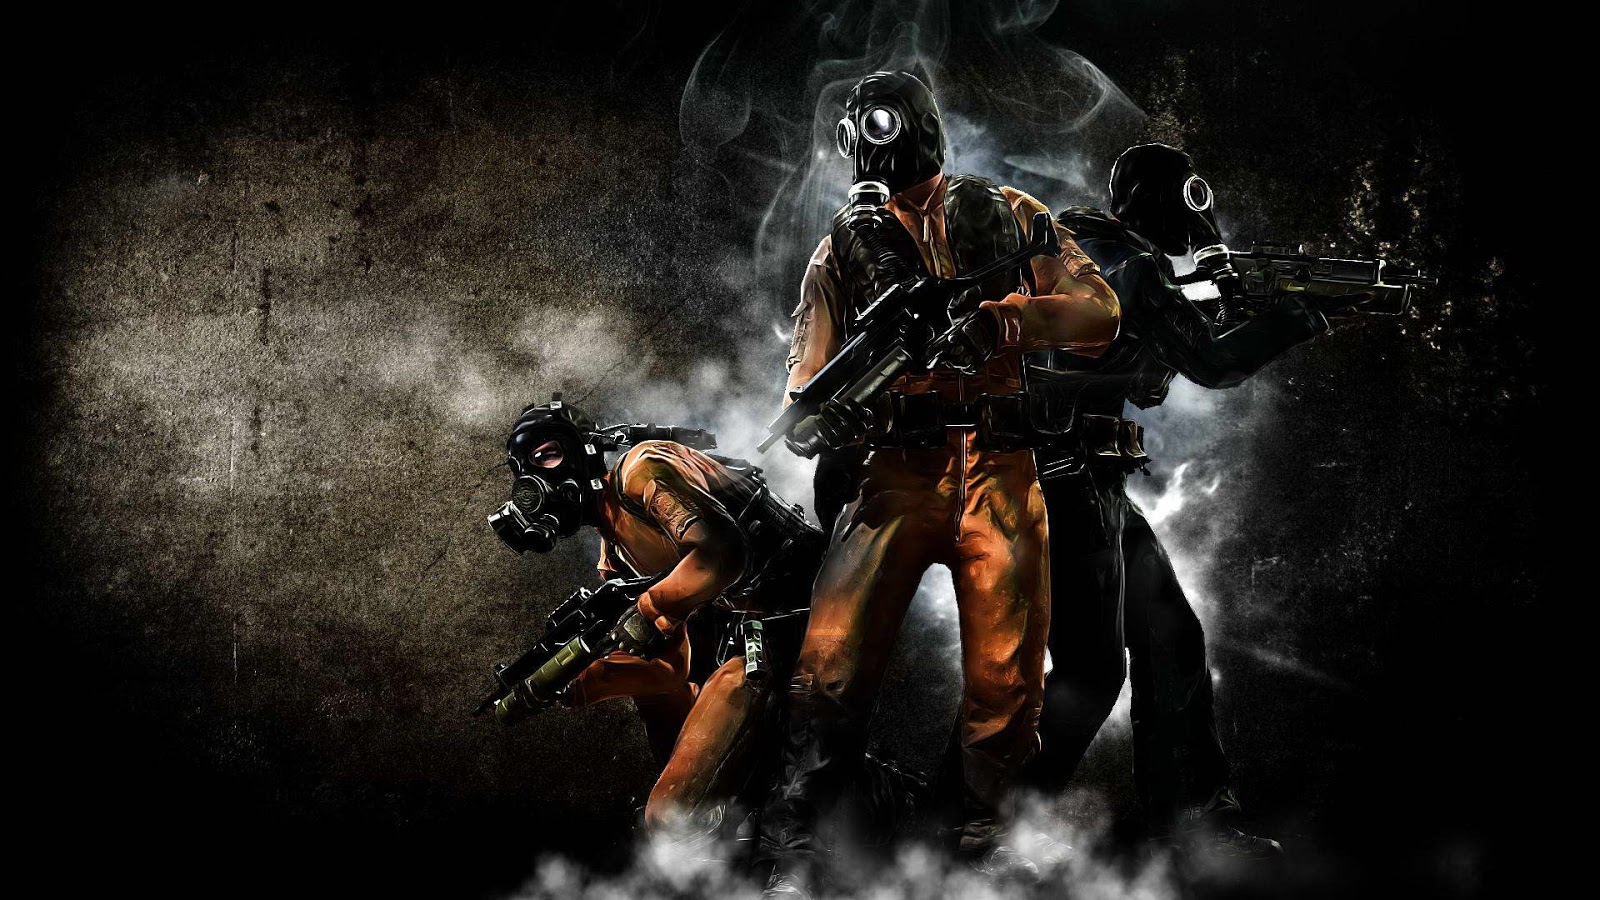 call of duty black ops 2 wallpaper call of duty black ops 2 wallpaper 1600x900